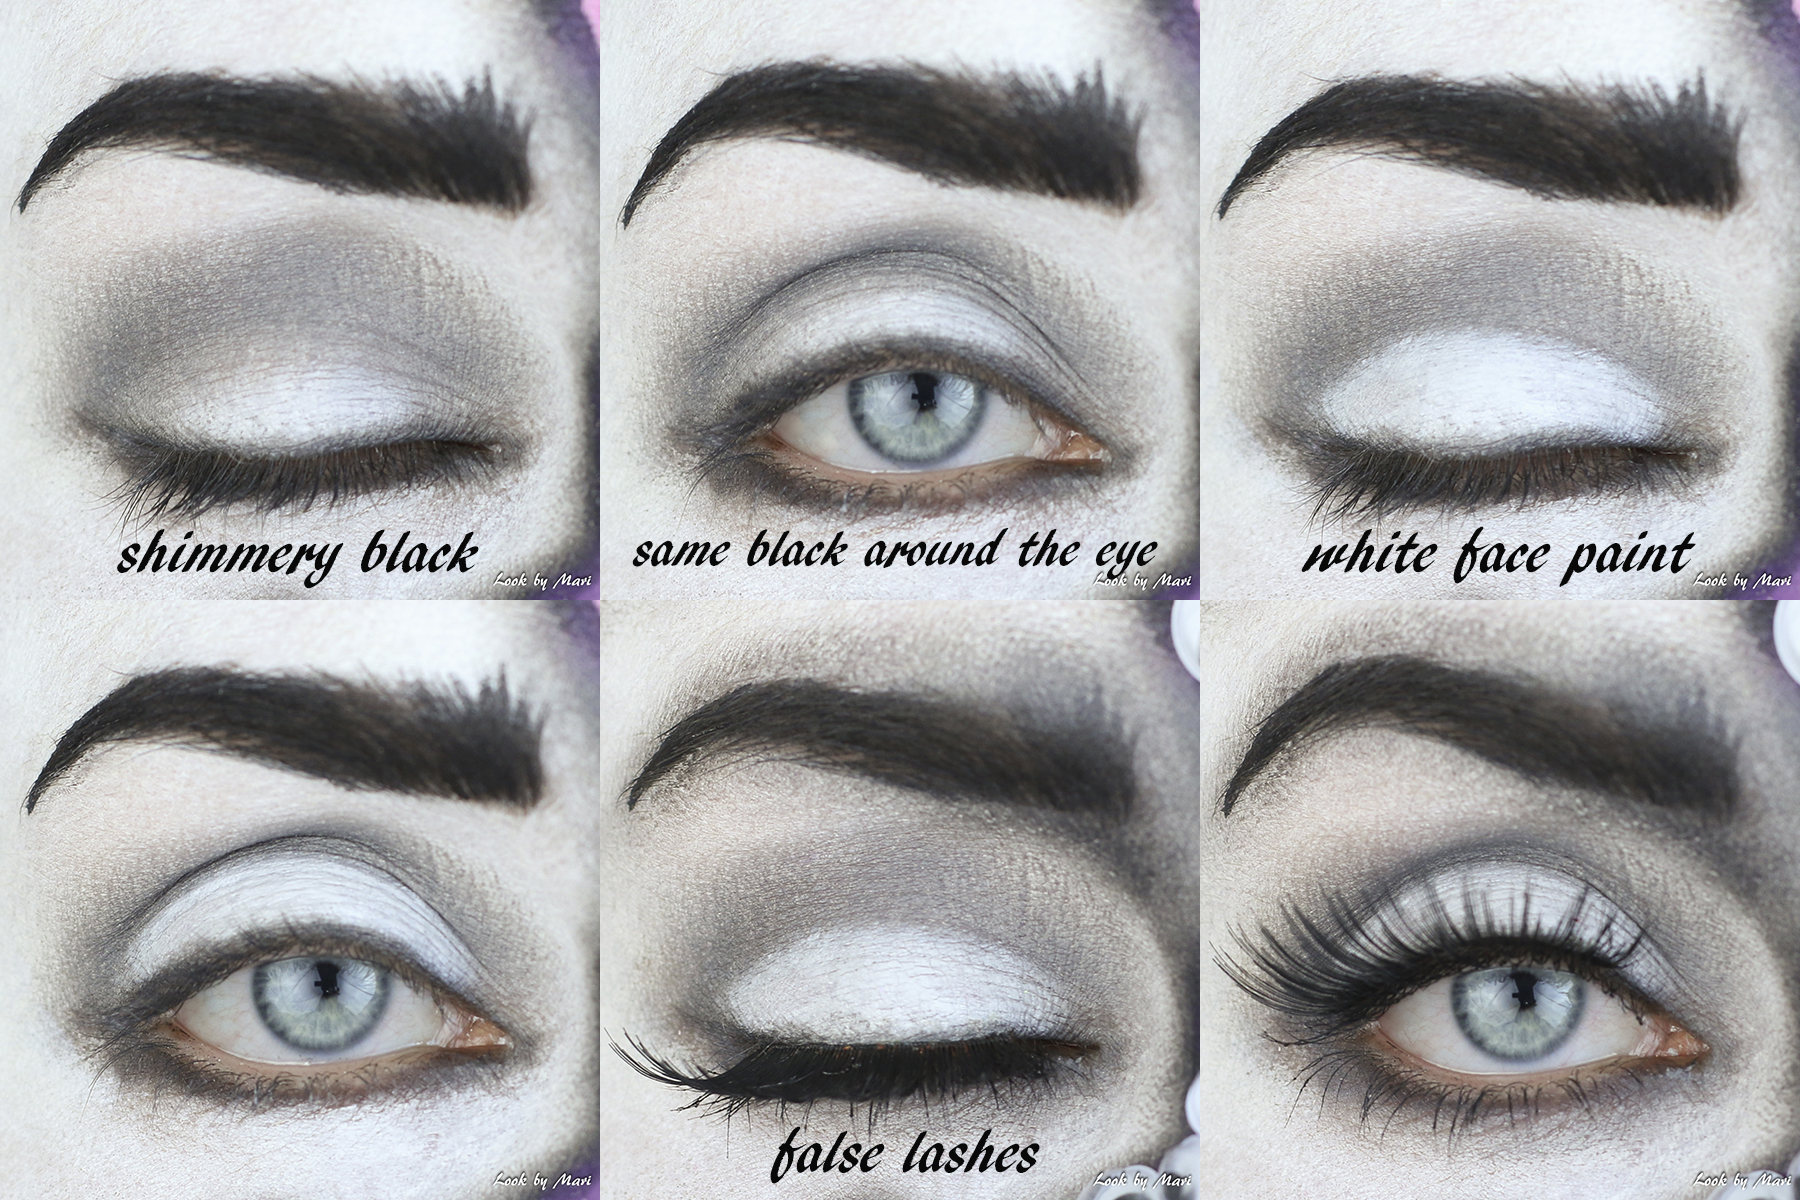 12 morphe brushes 35U smoky eye tutorial inspiration inspo 2017